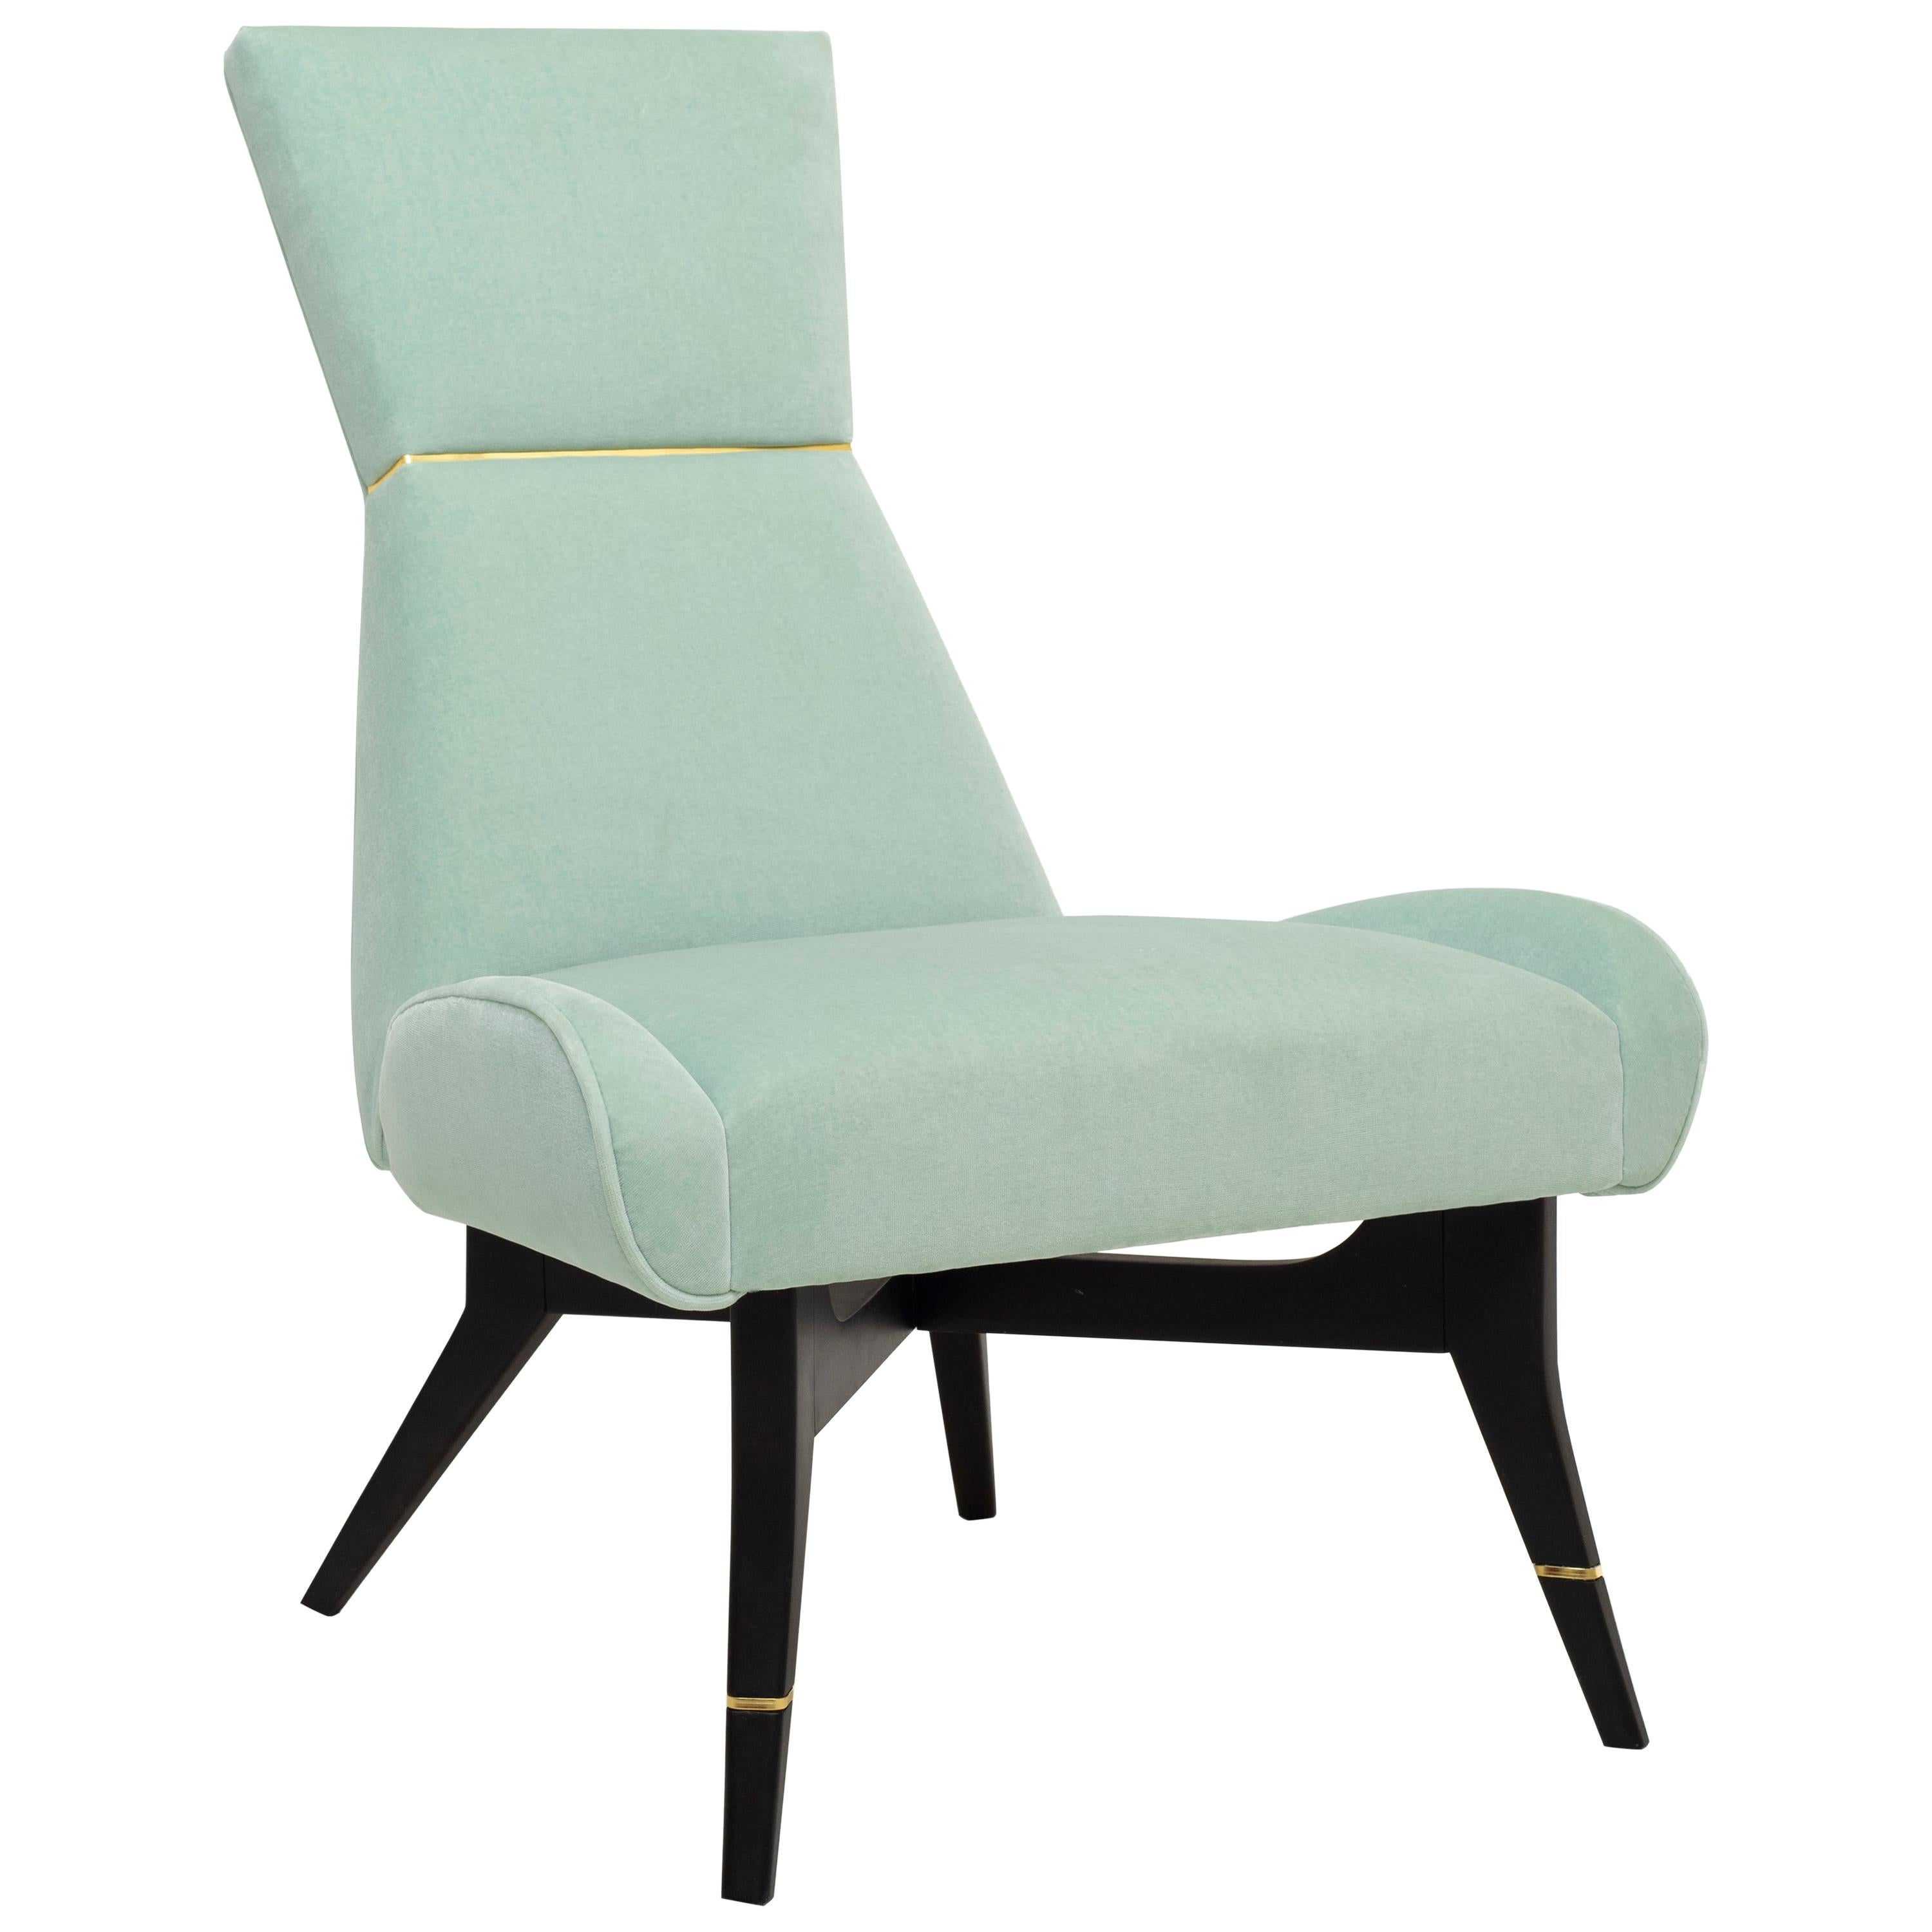 Uni, Light Green Armchair with Gilt Details on the Backrest and Legs